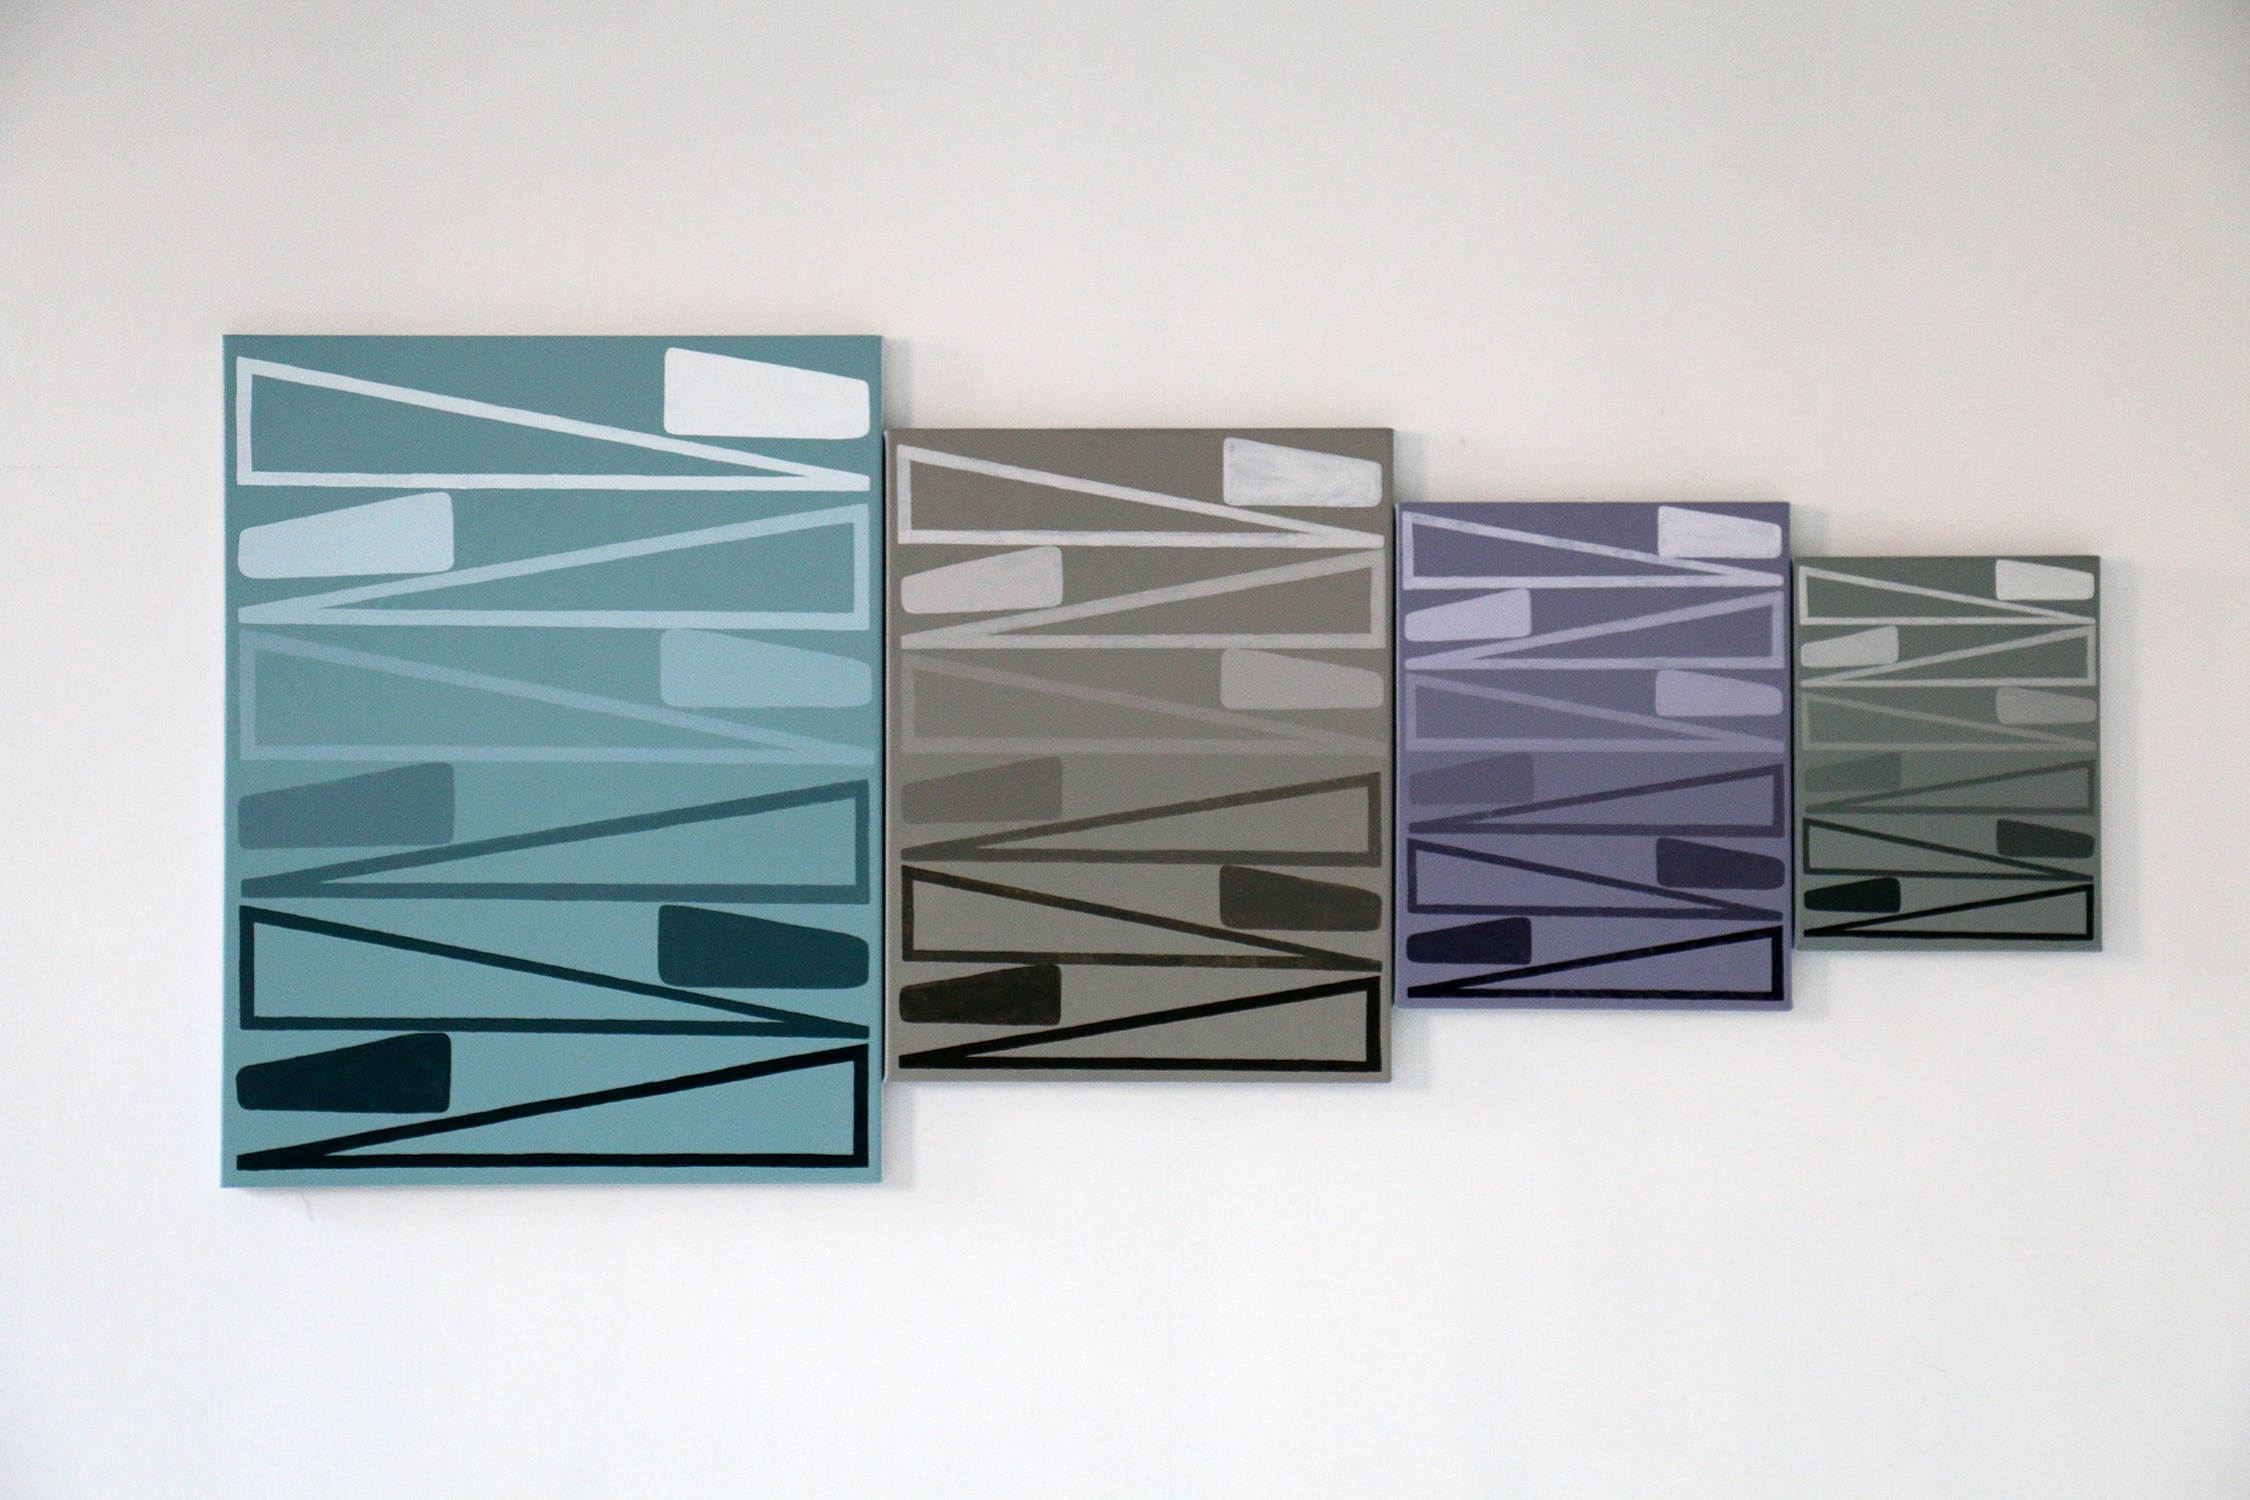 #006(S,M,L,XL) 2014 Acrylic on canvas 53 x 151 cm (21 x 59.5 inches)